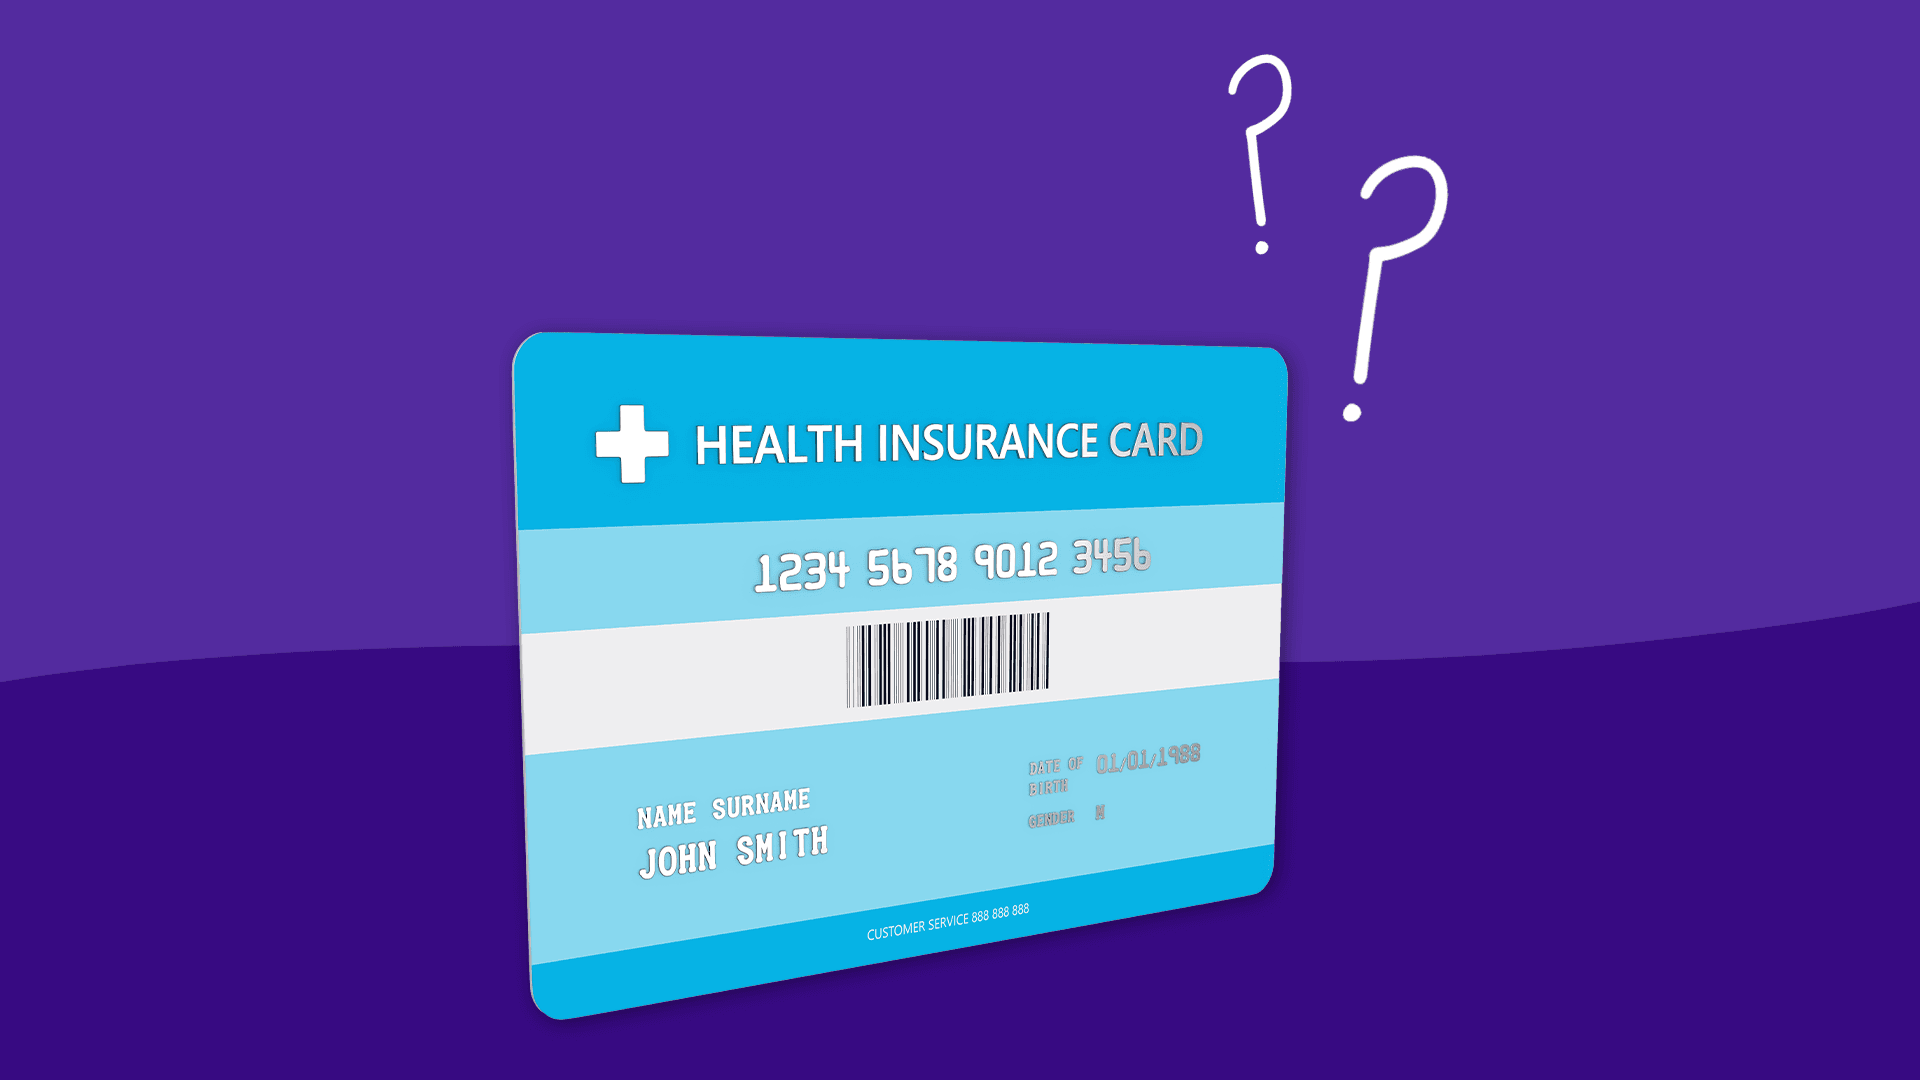 Is there a penalty for being uninsured?